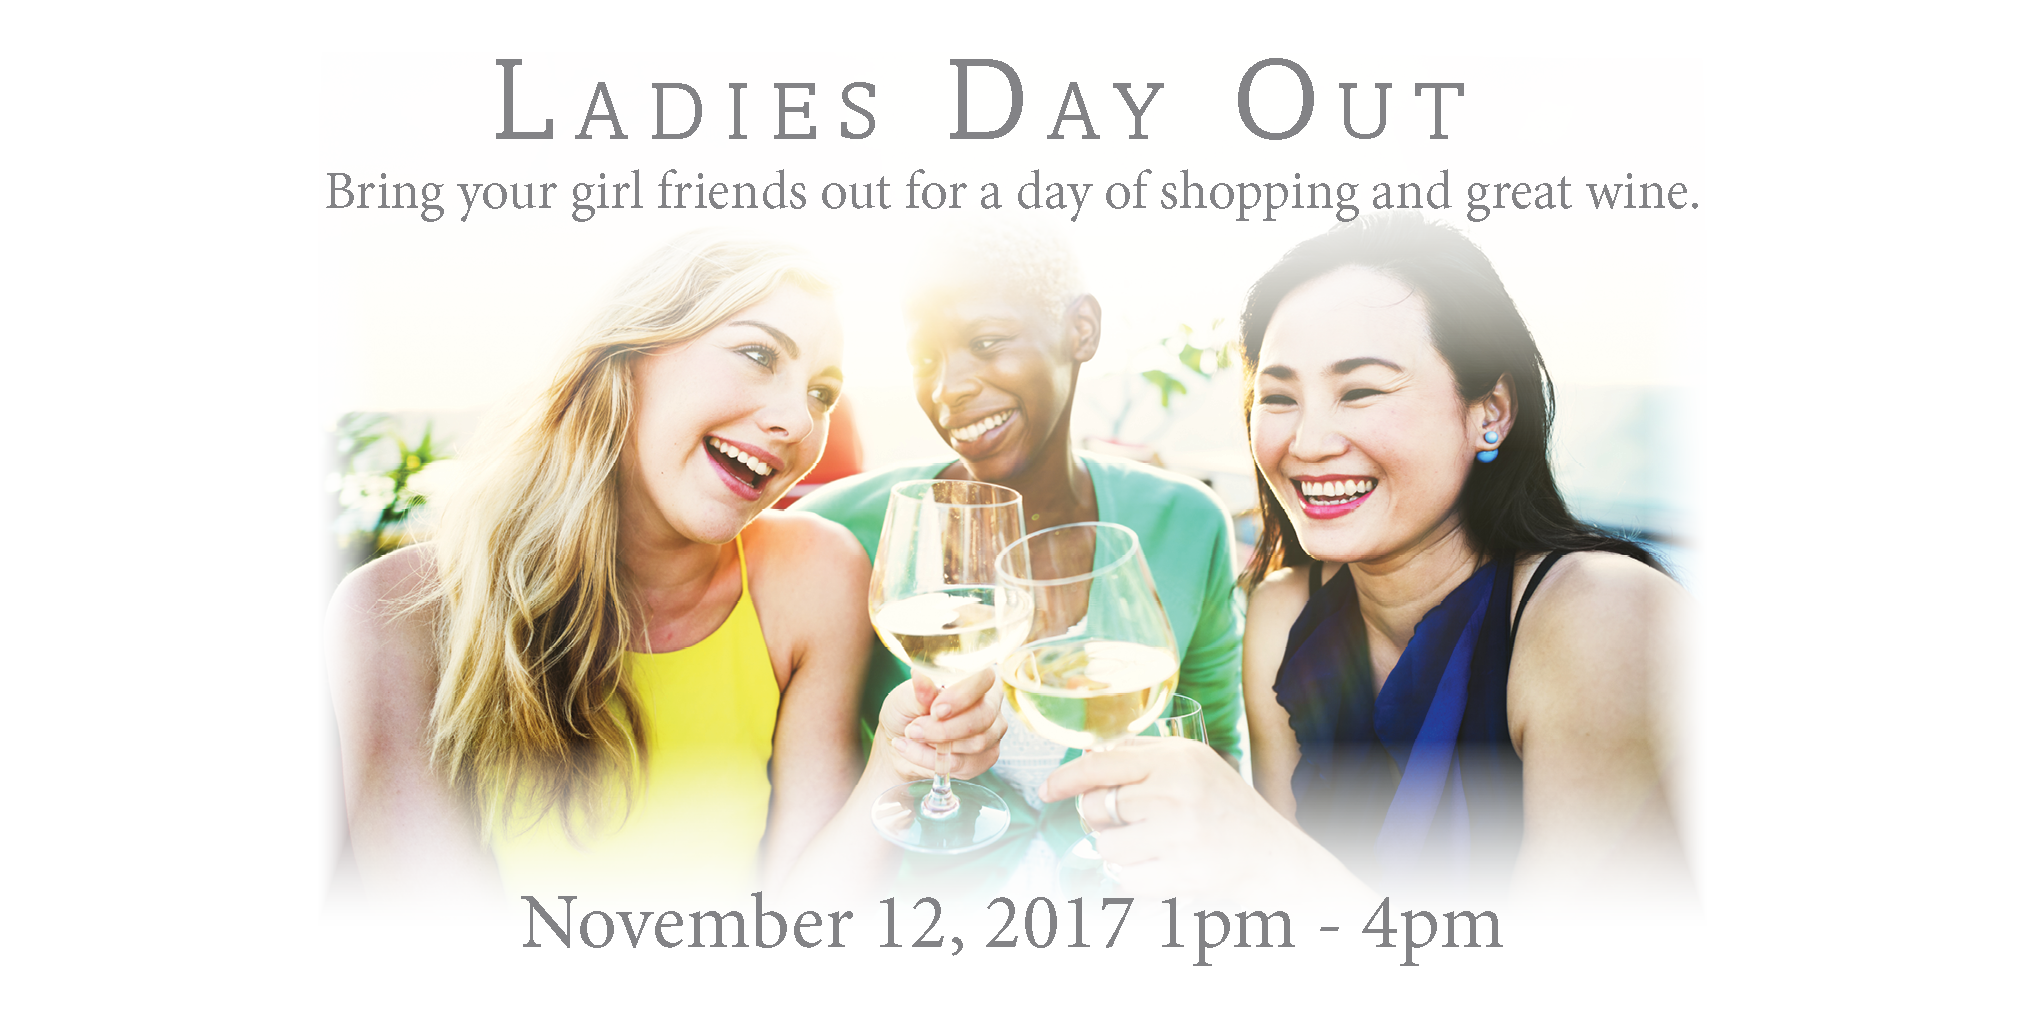 Ladies Day Out.slideshow